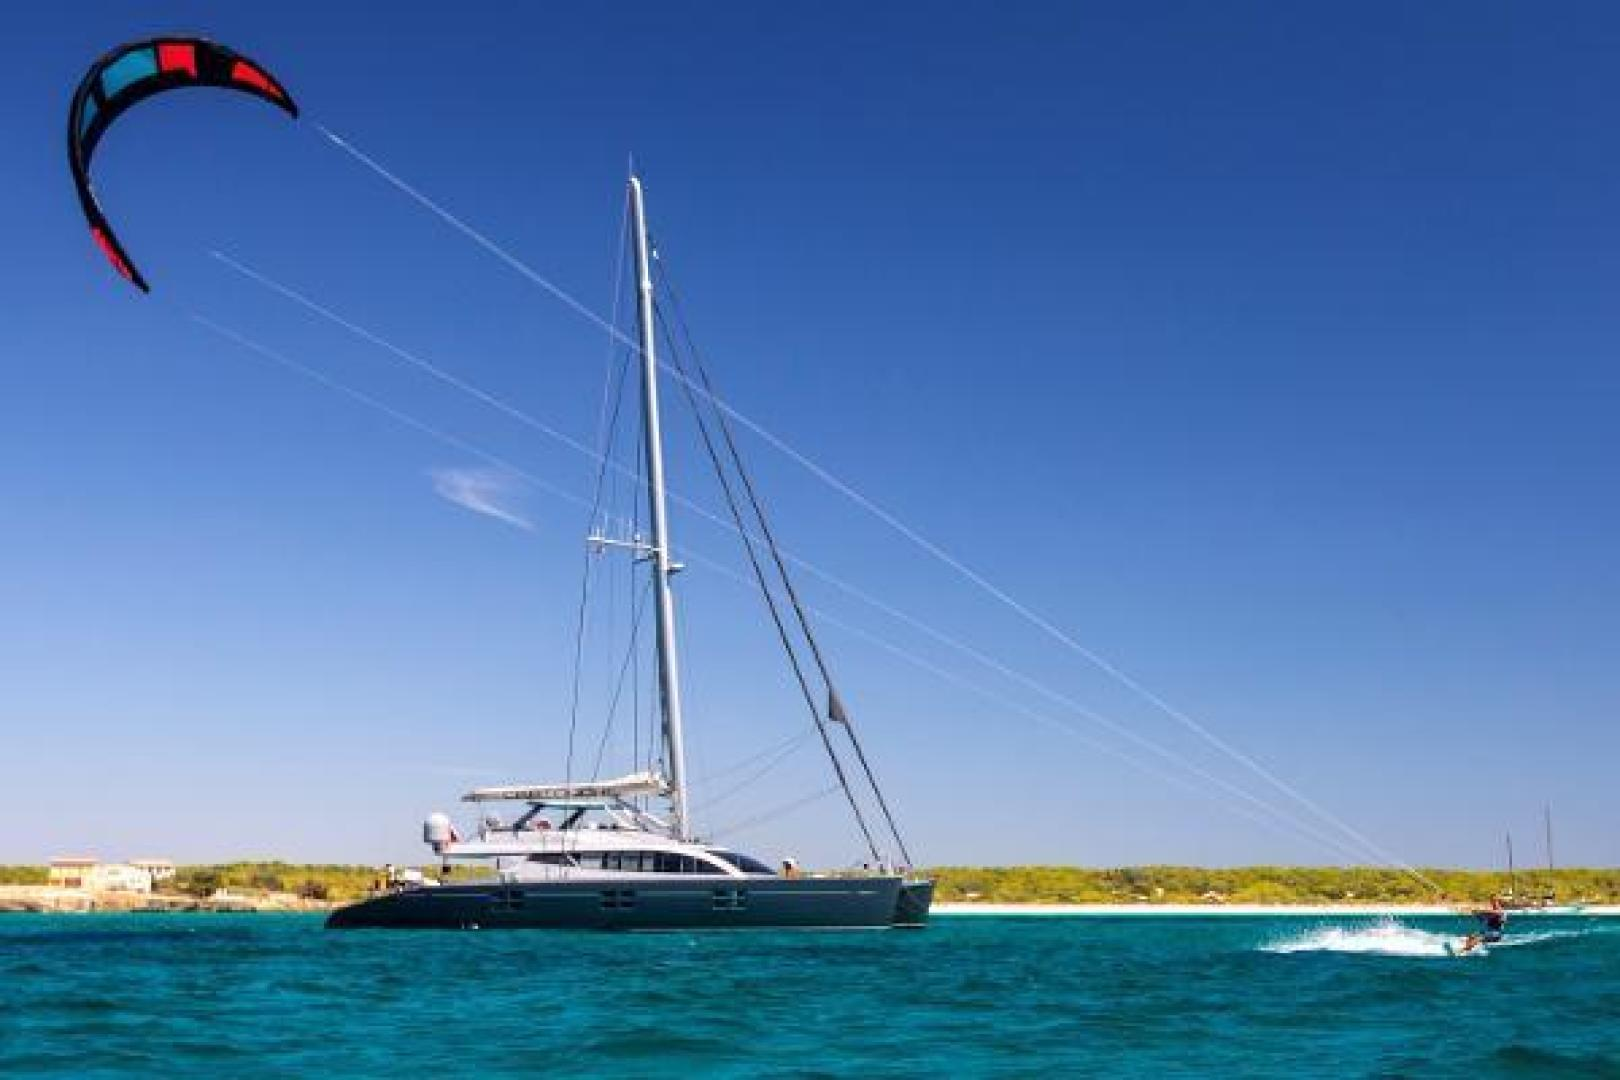 Catamaran-Blue Coast Yachts  2011-CARTOUCHE Antigua & Barbuda-1296522 | Thumbnail